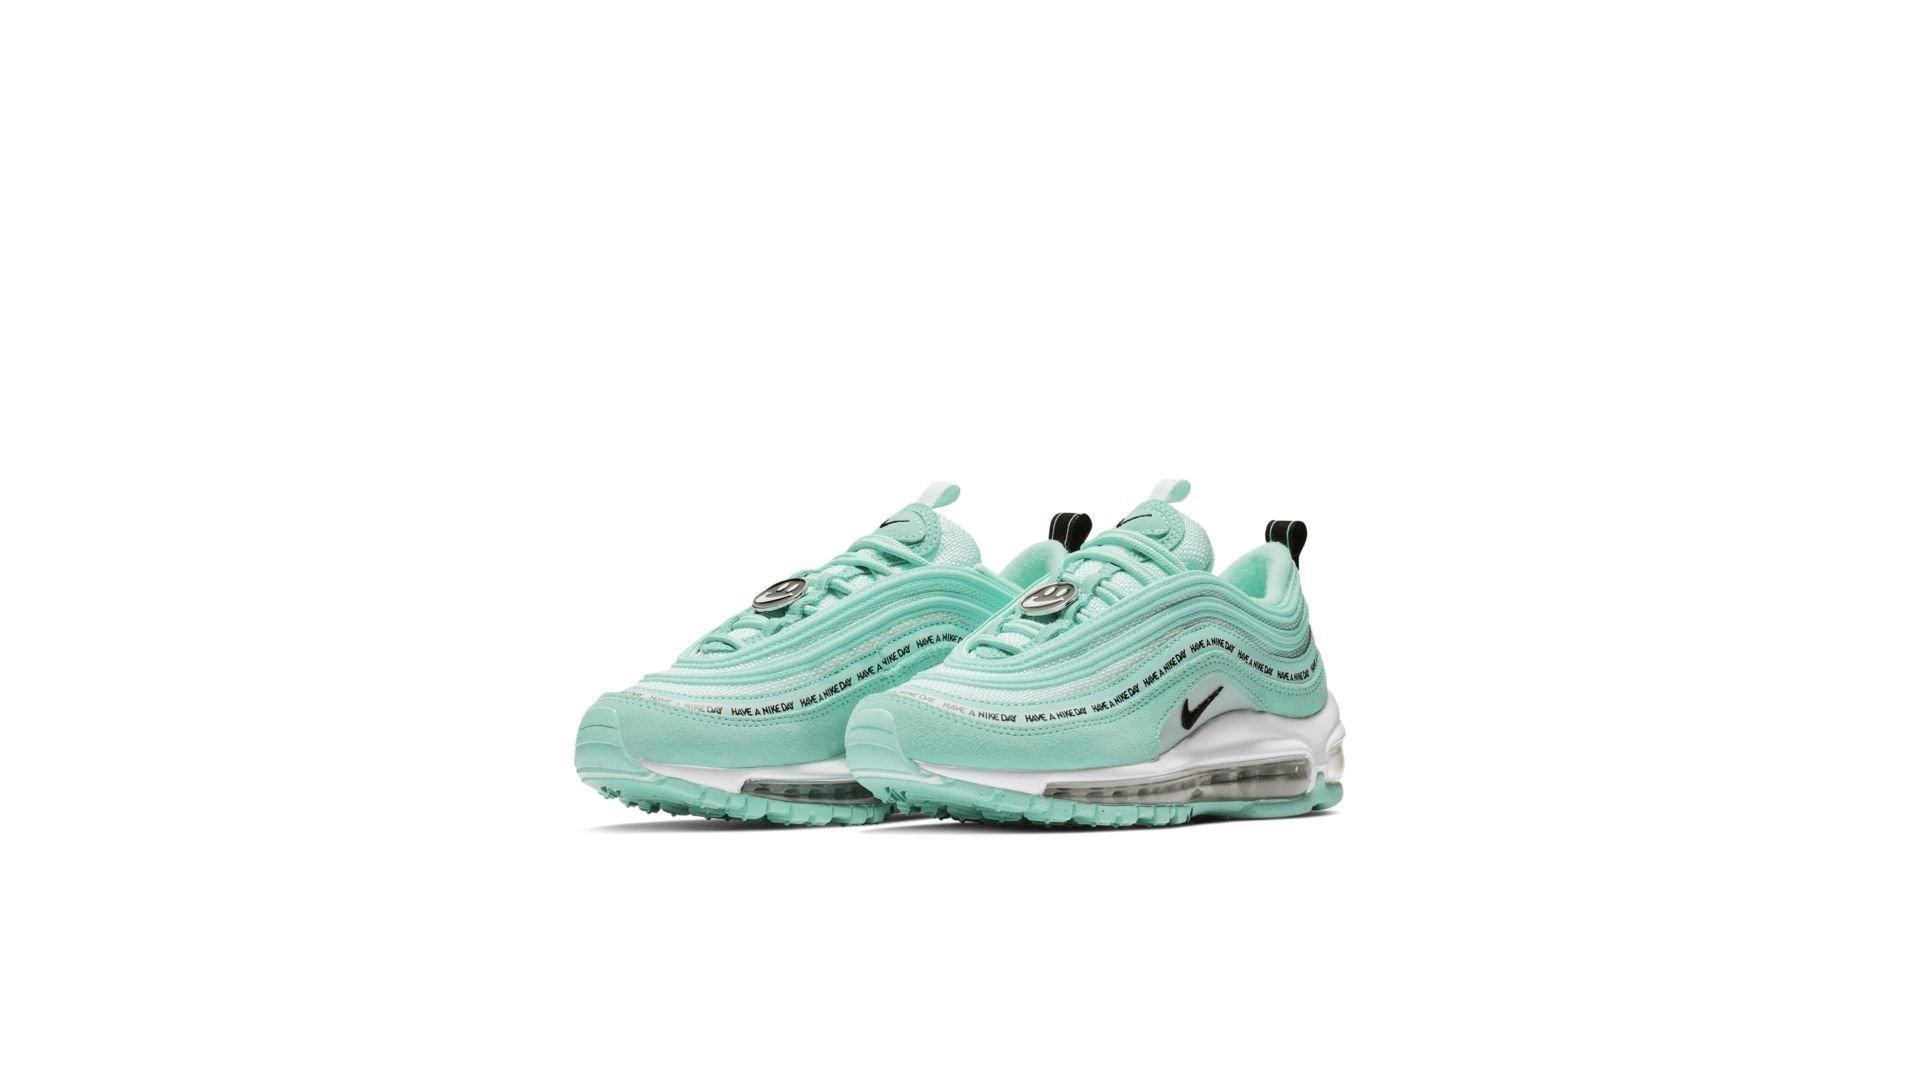 Nike Air Max 97 GS Teal 'Have A Nike Day' (923288 300)